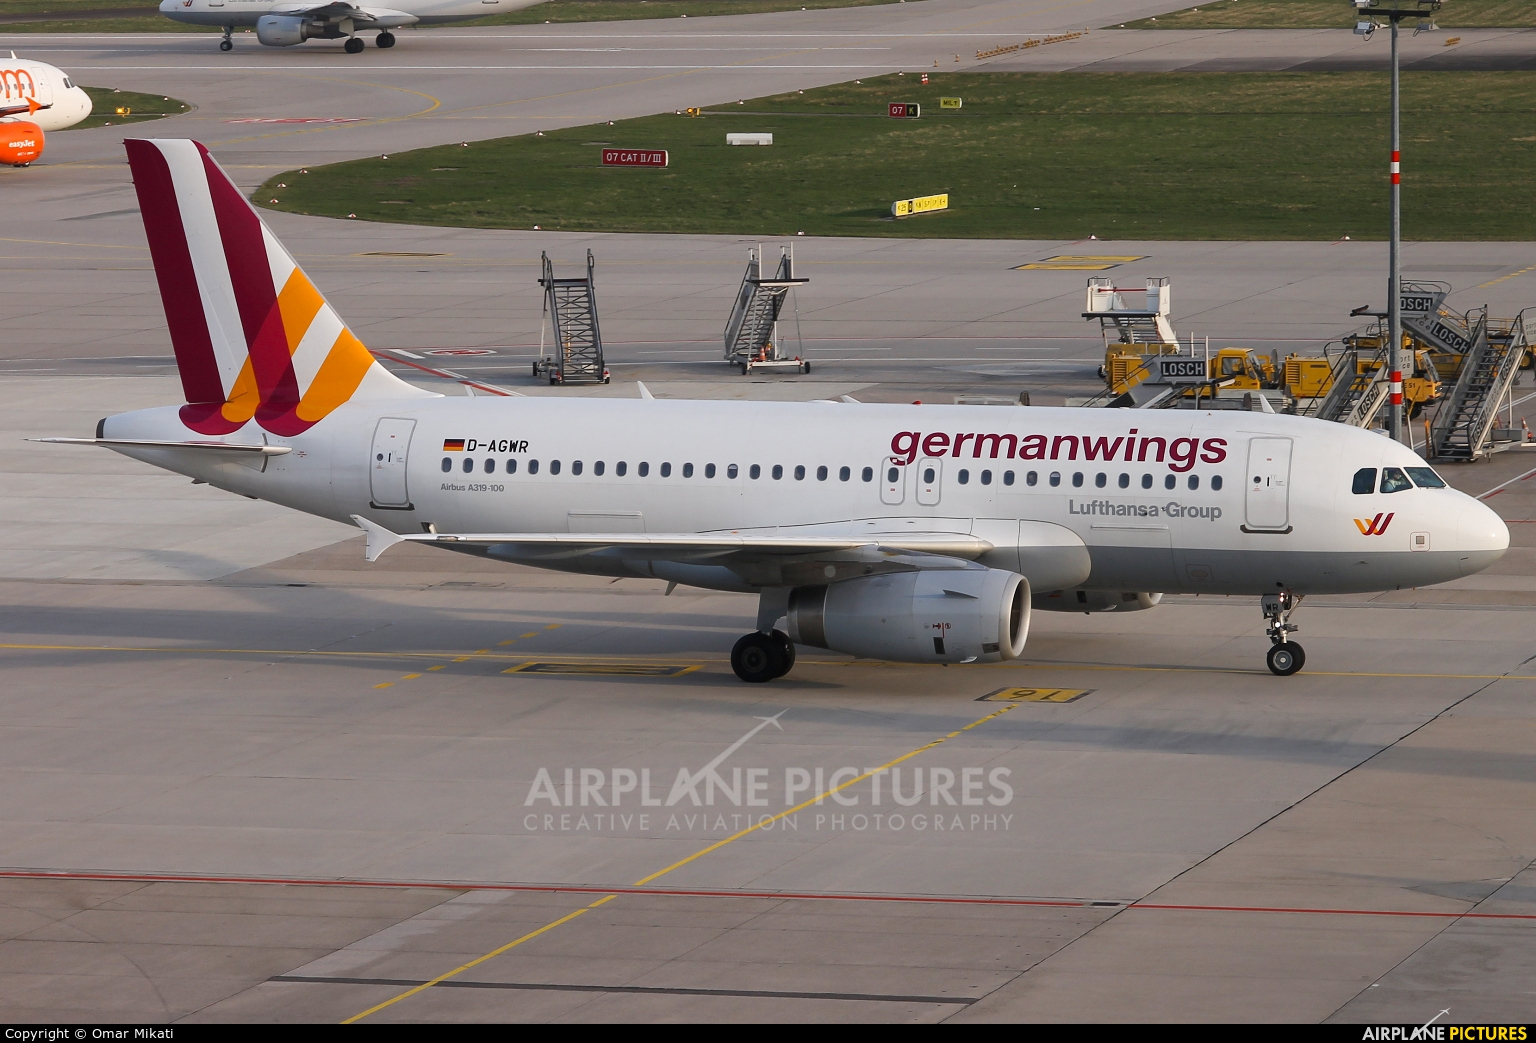 Germanwings D-AGWR aircraft at Stuttgart